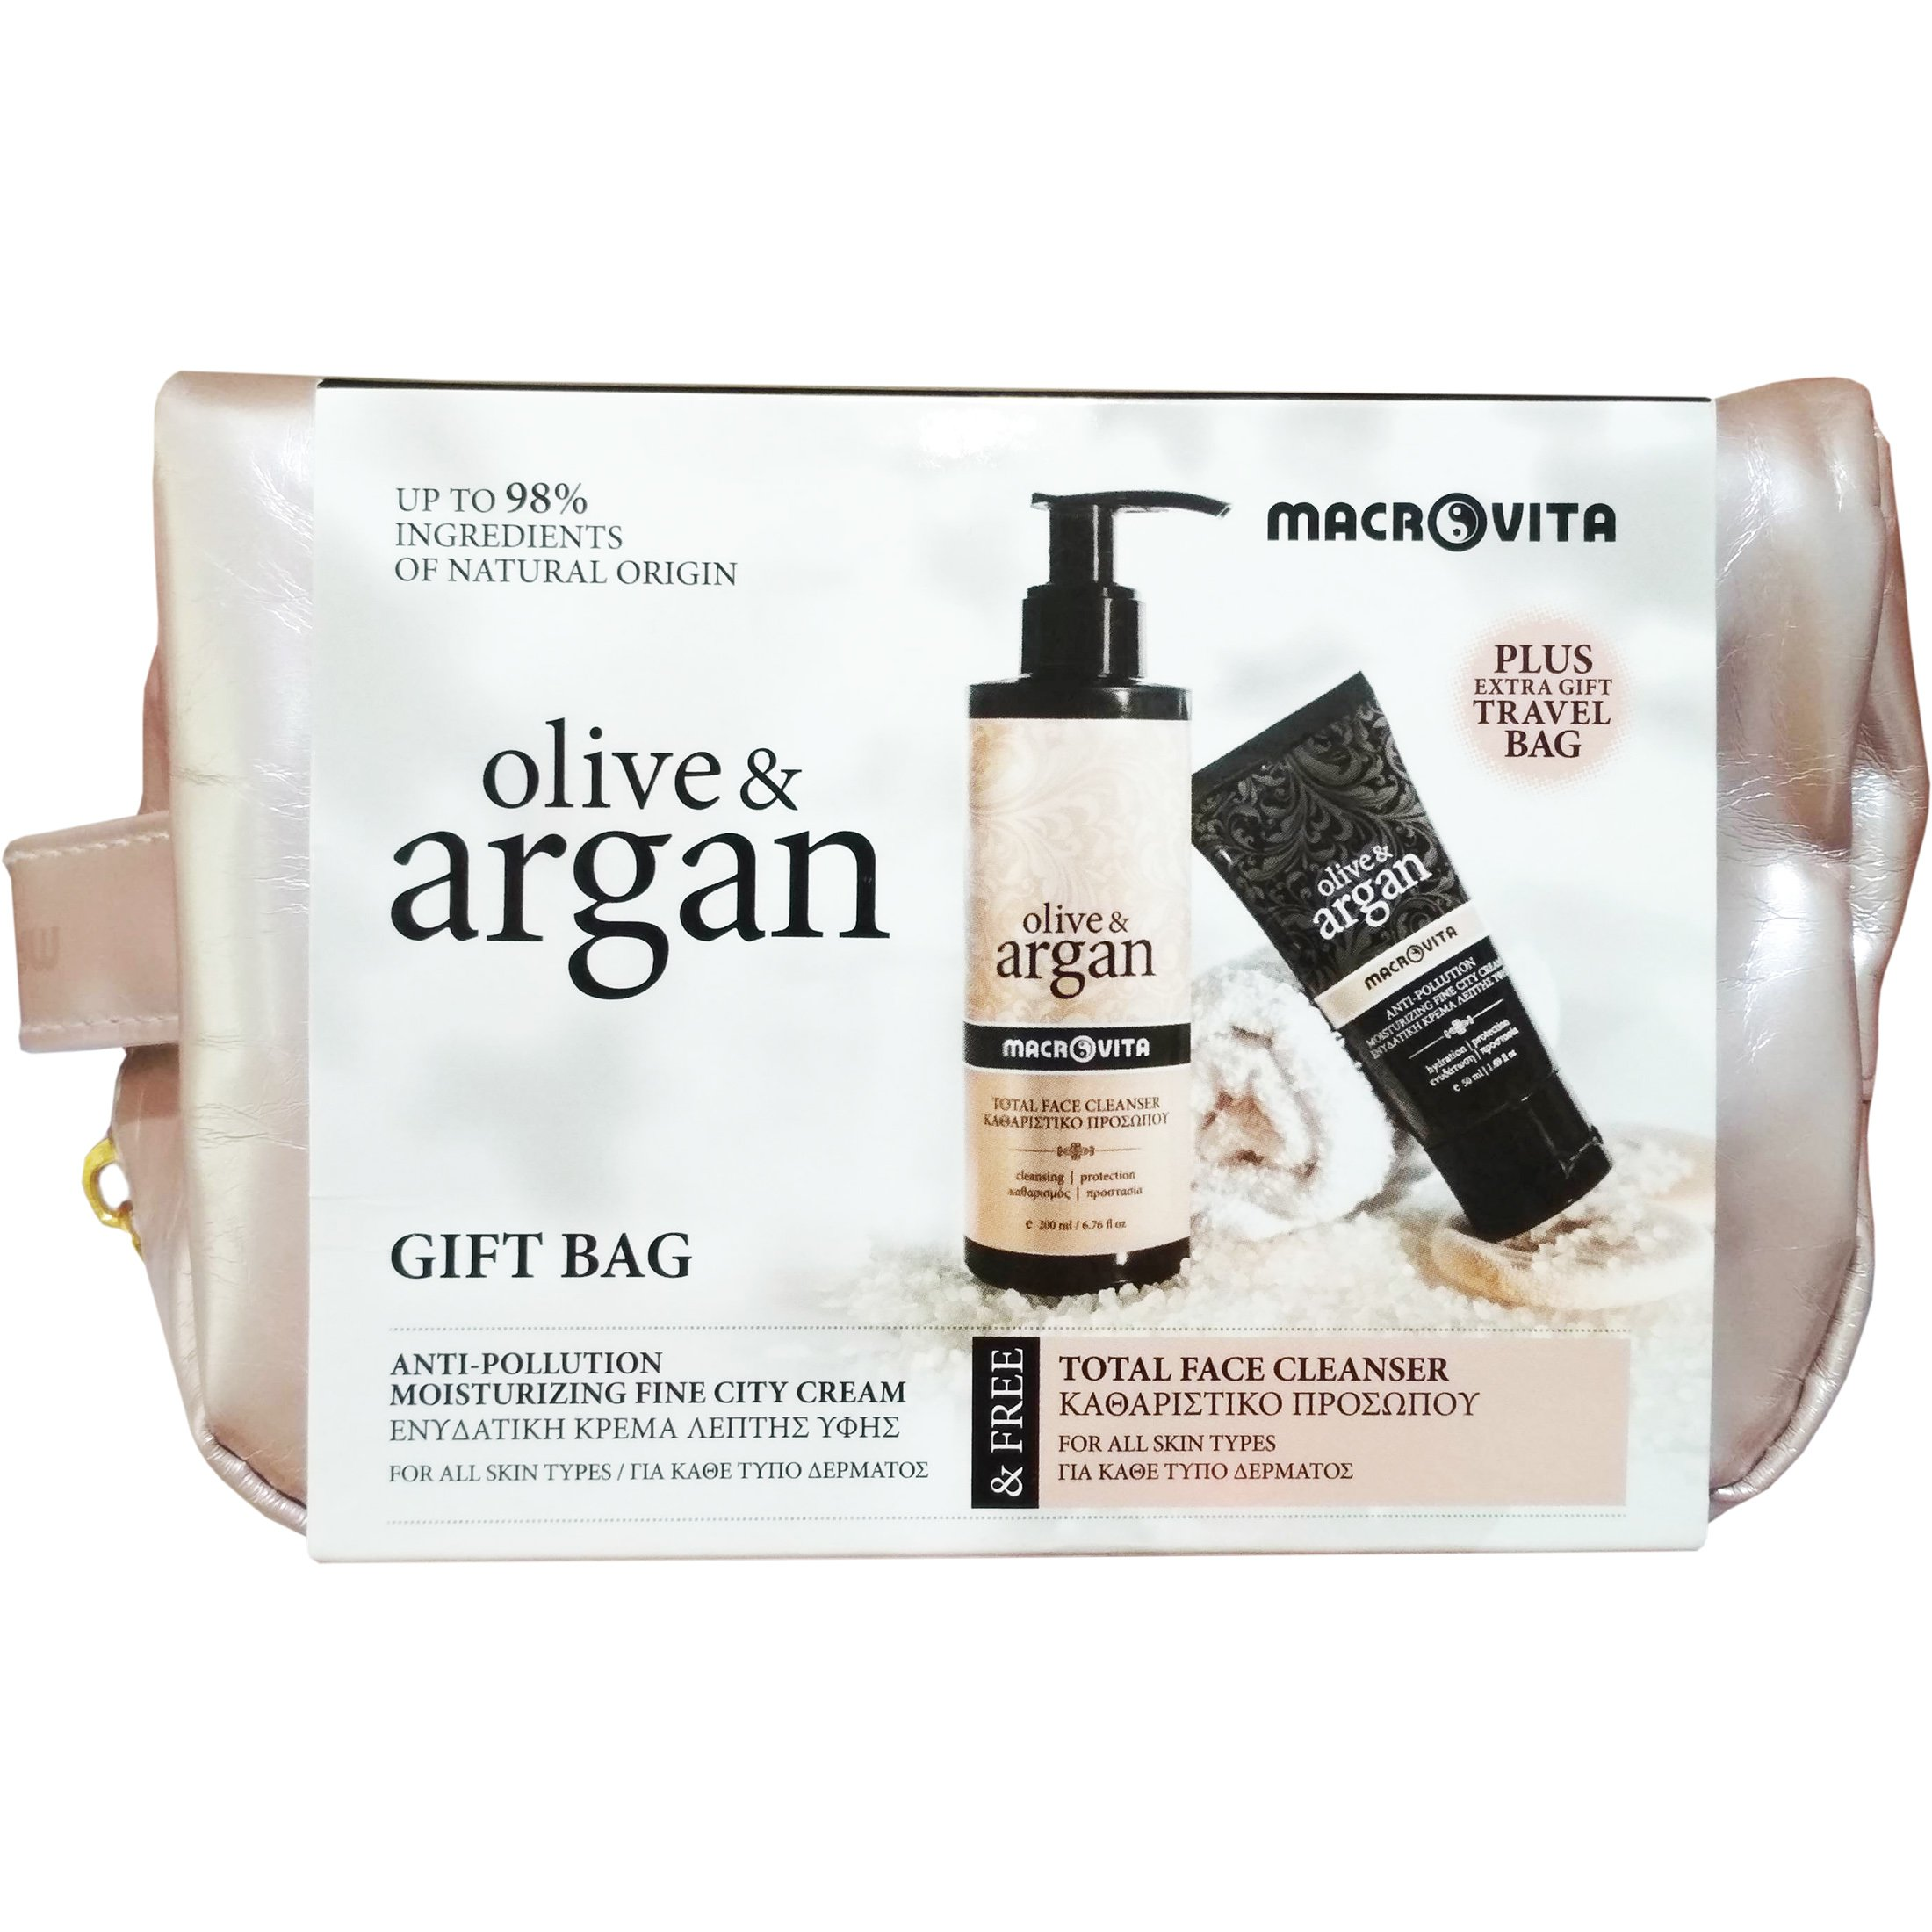 Macrovita Gift Bag Olive Argan Anti-Pollution Moisturizing Fine City Cream 50ml & Δώρο Total Face Cleanser 200ml & Travel Bag